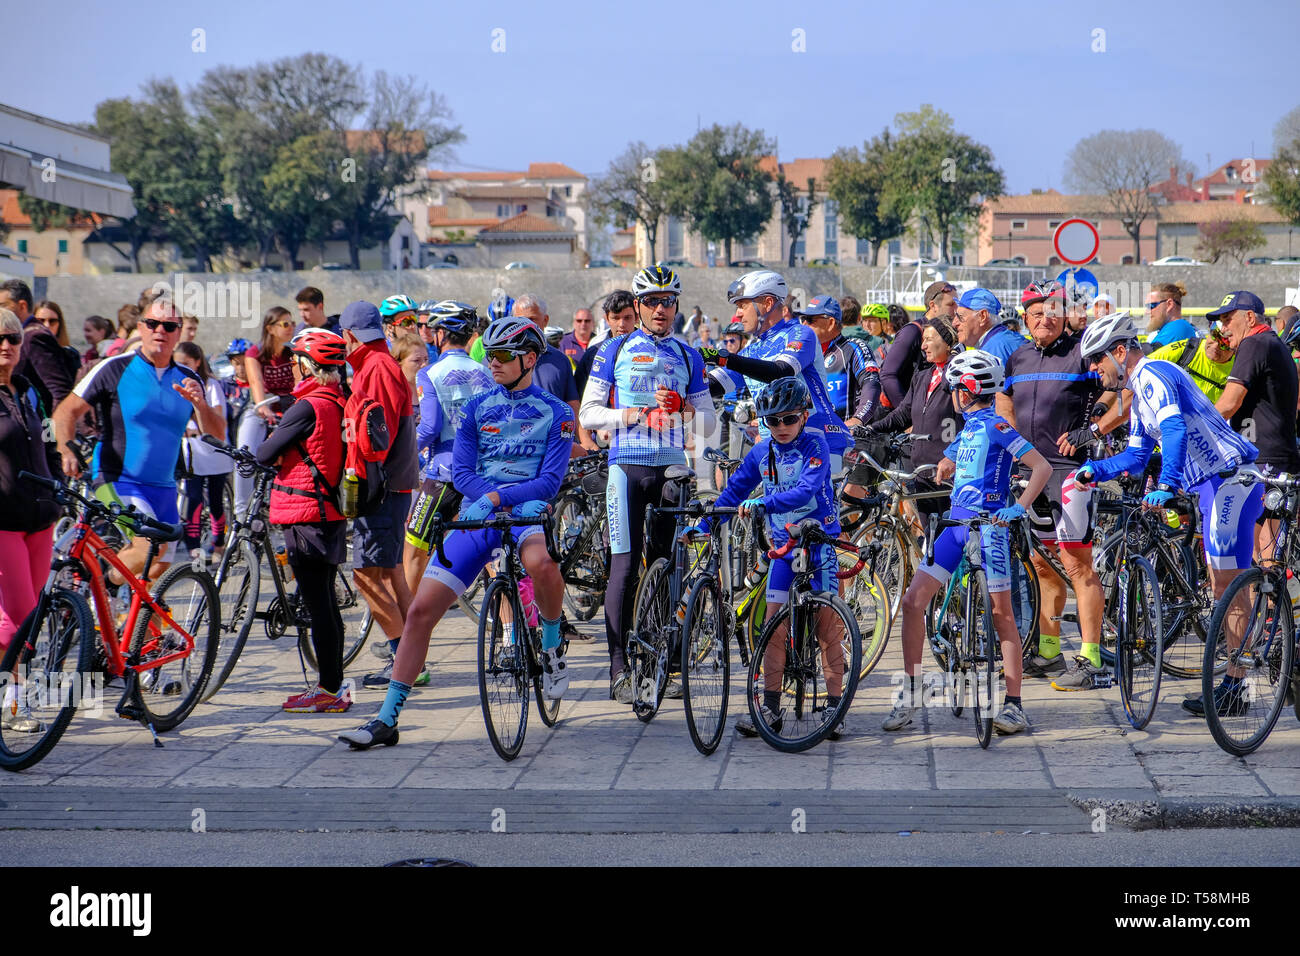 Departure of the annual Easter Monday bicycletour from Zadarto Vir, Zadar Croatia Stock Photo